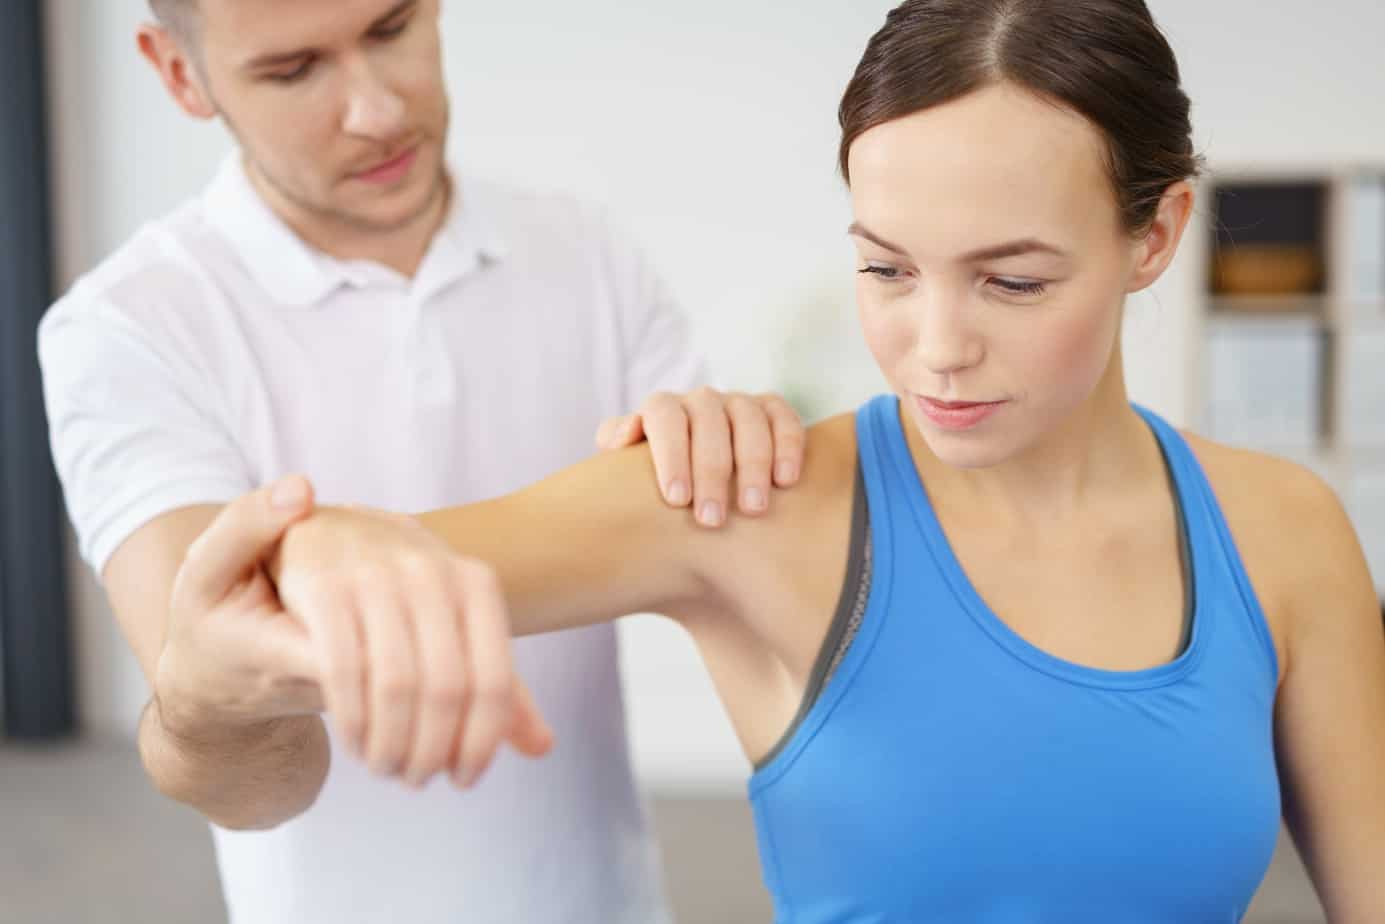 Finding joint pain relief with infrared heat